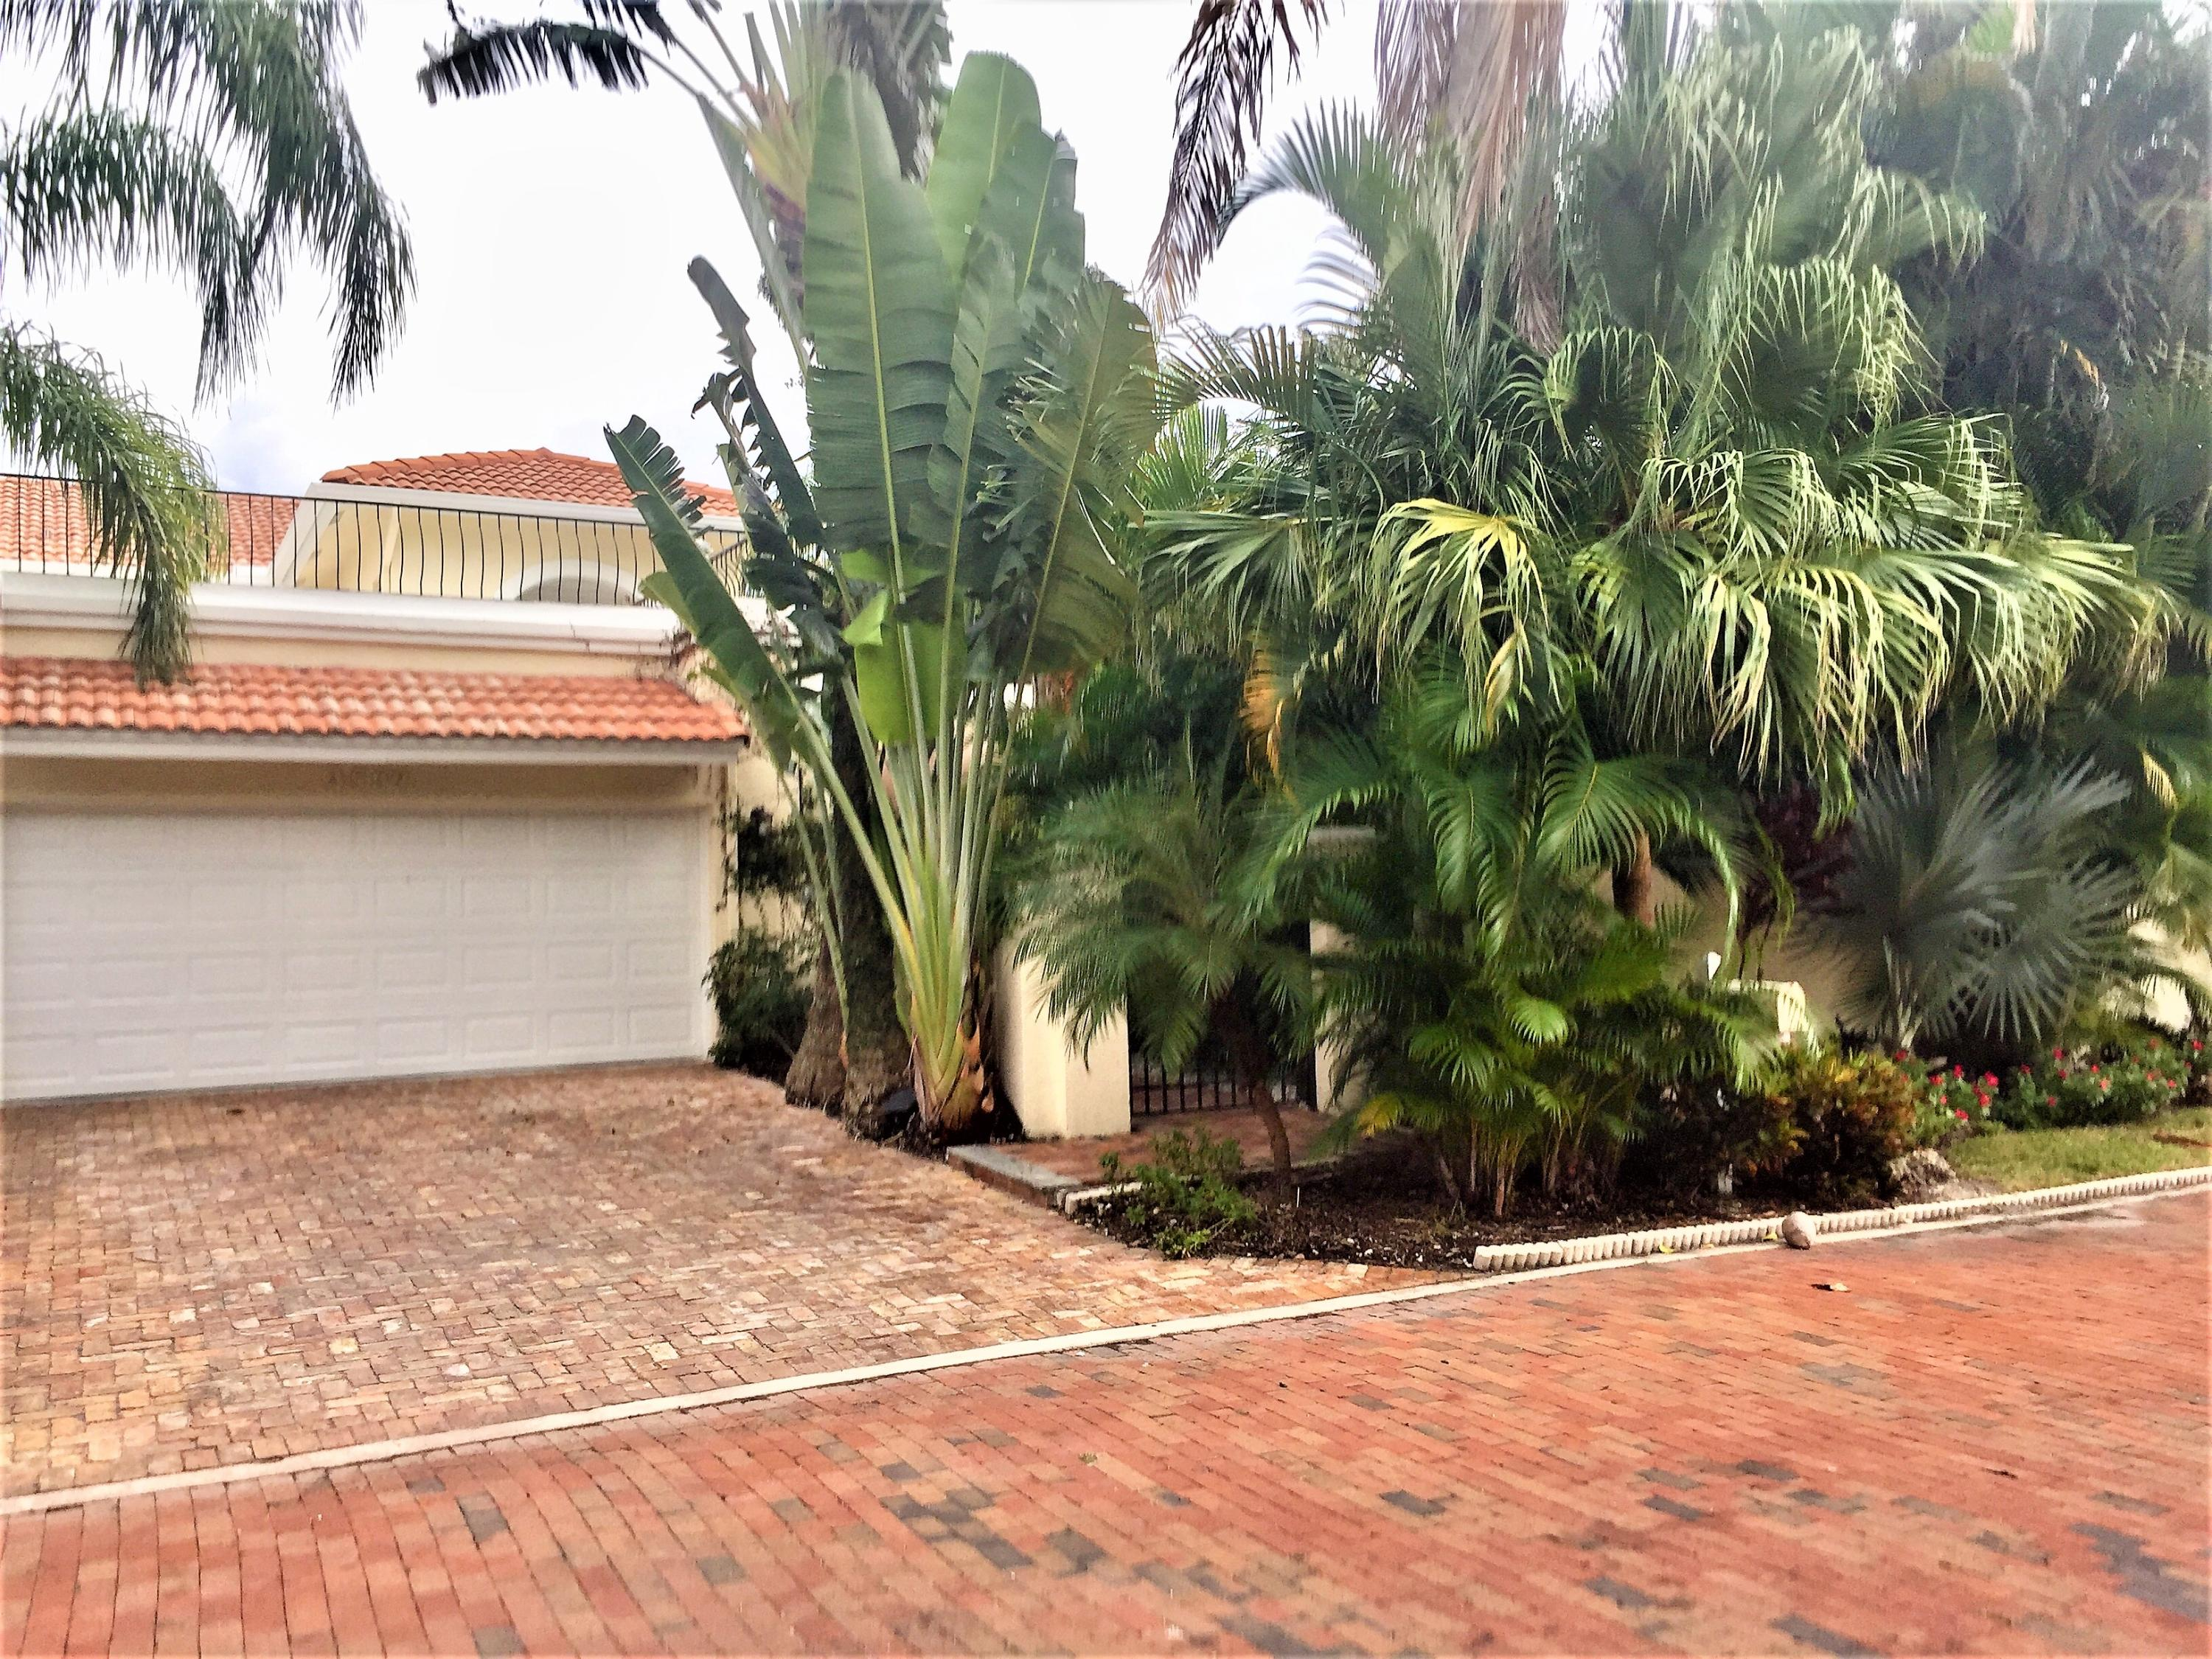 3589 Captains Walk  Delray Beach, FL 33483